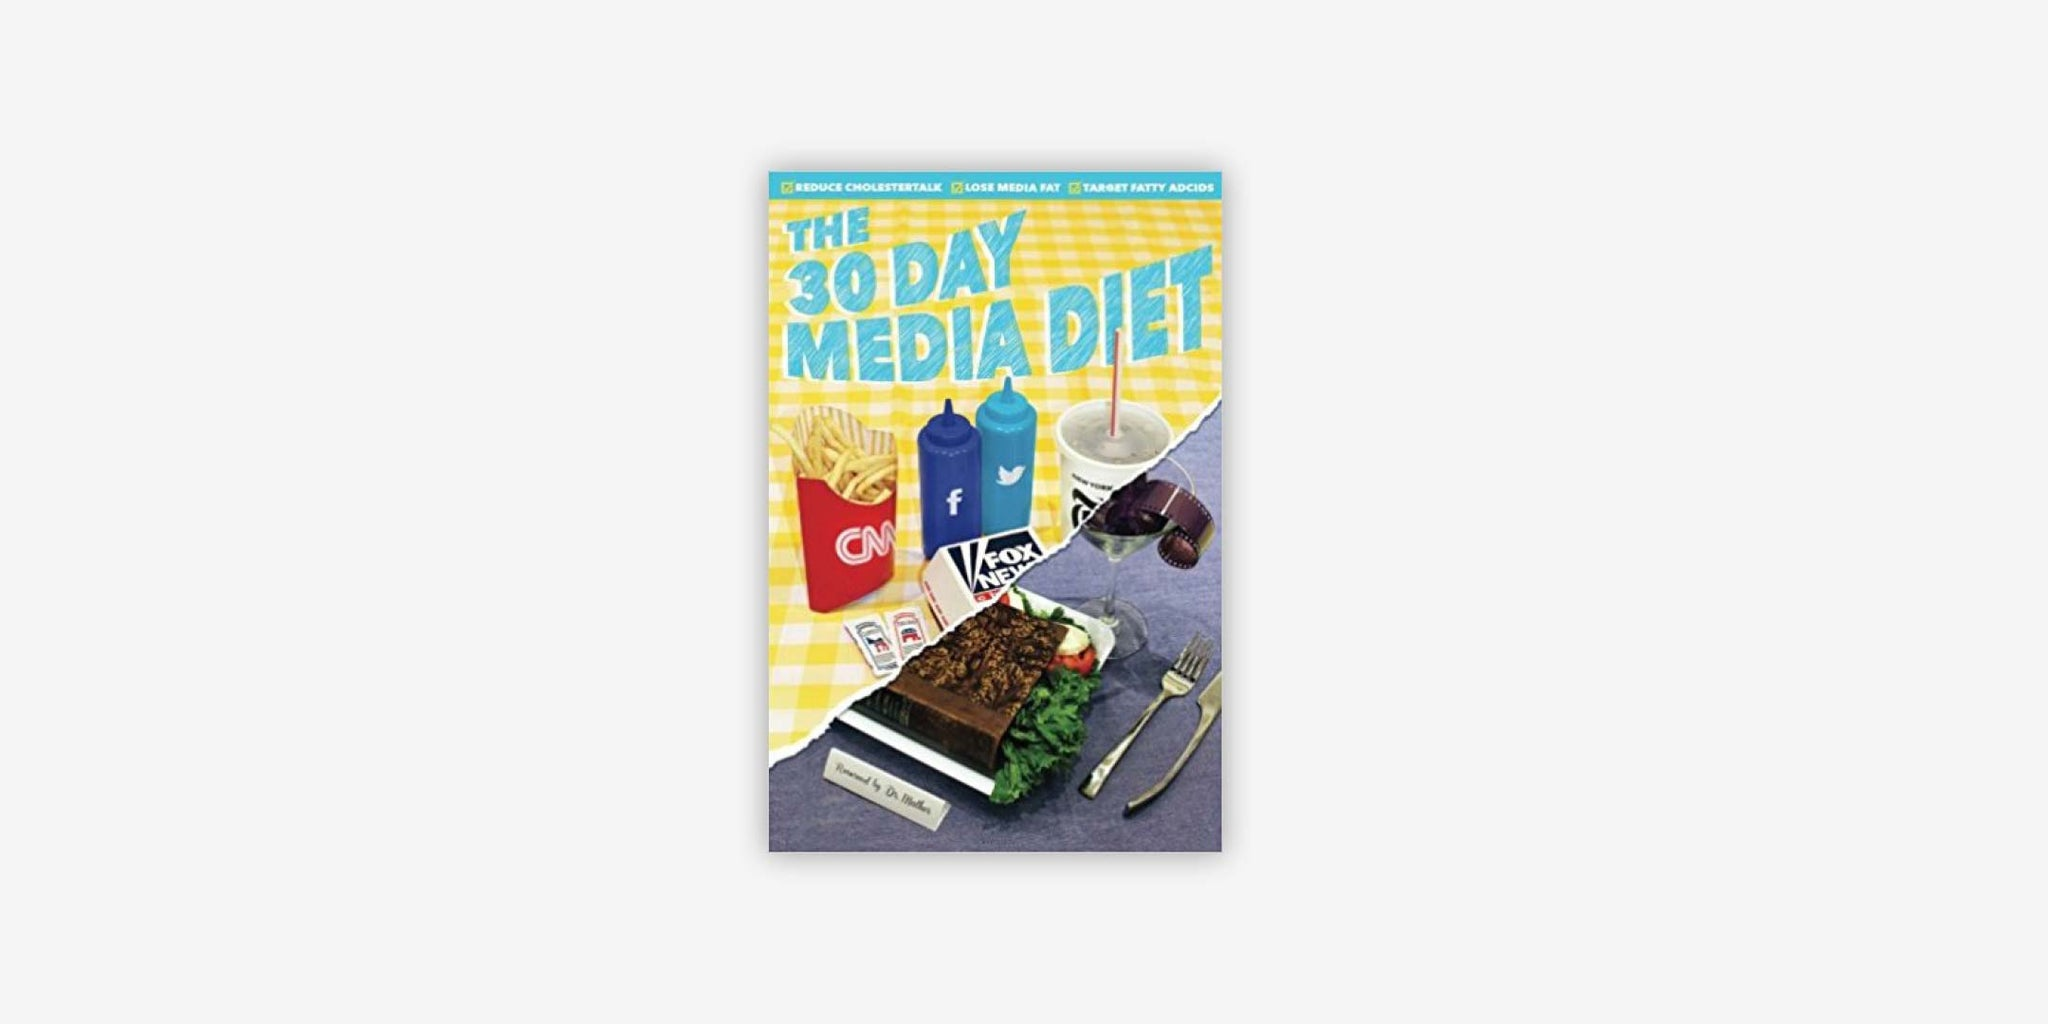 The 30 Day Media Diet